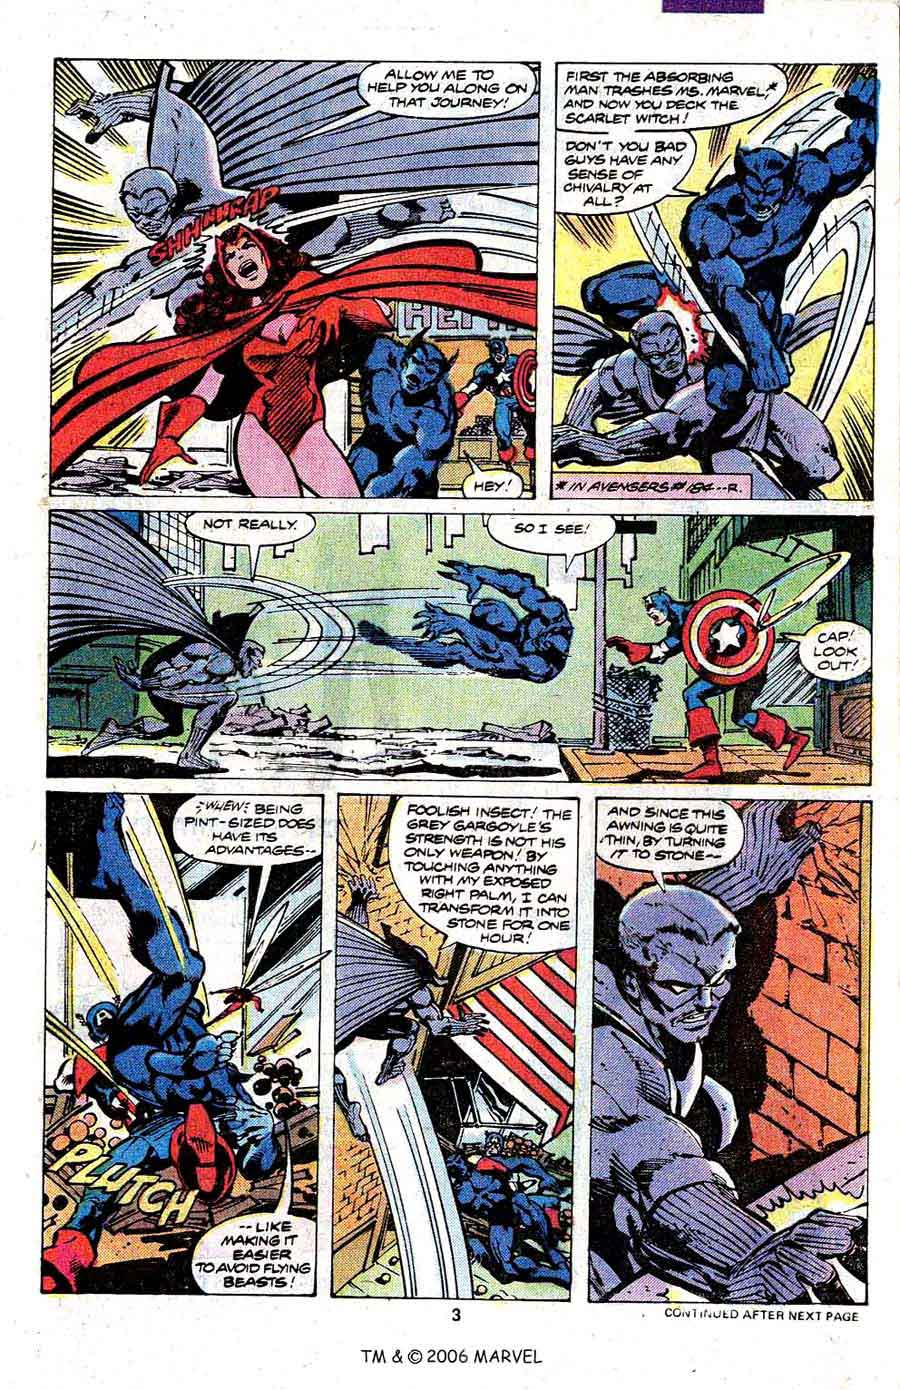 Avengers #191 marvel 1980s bronze age comic book page art by John Byrne